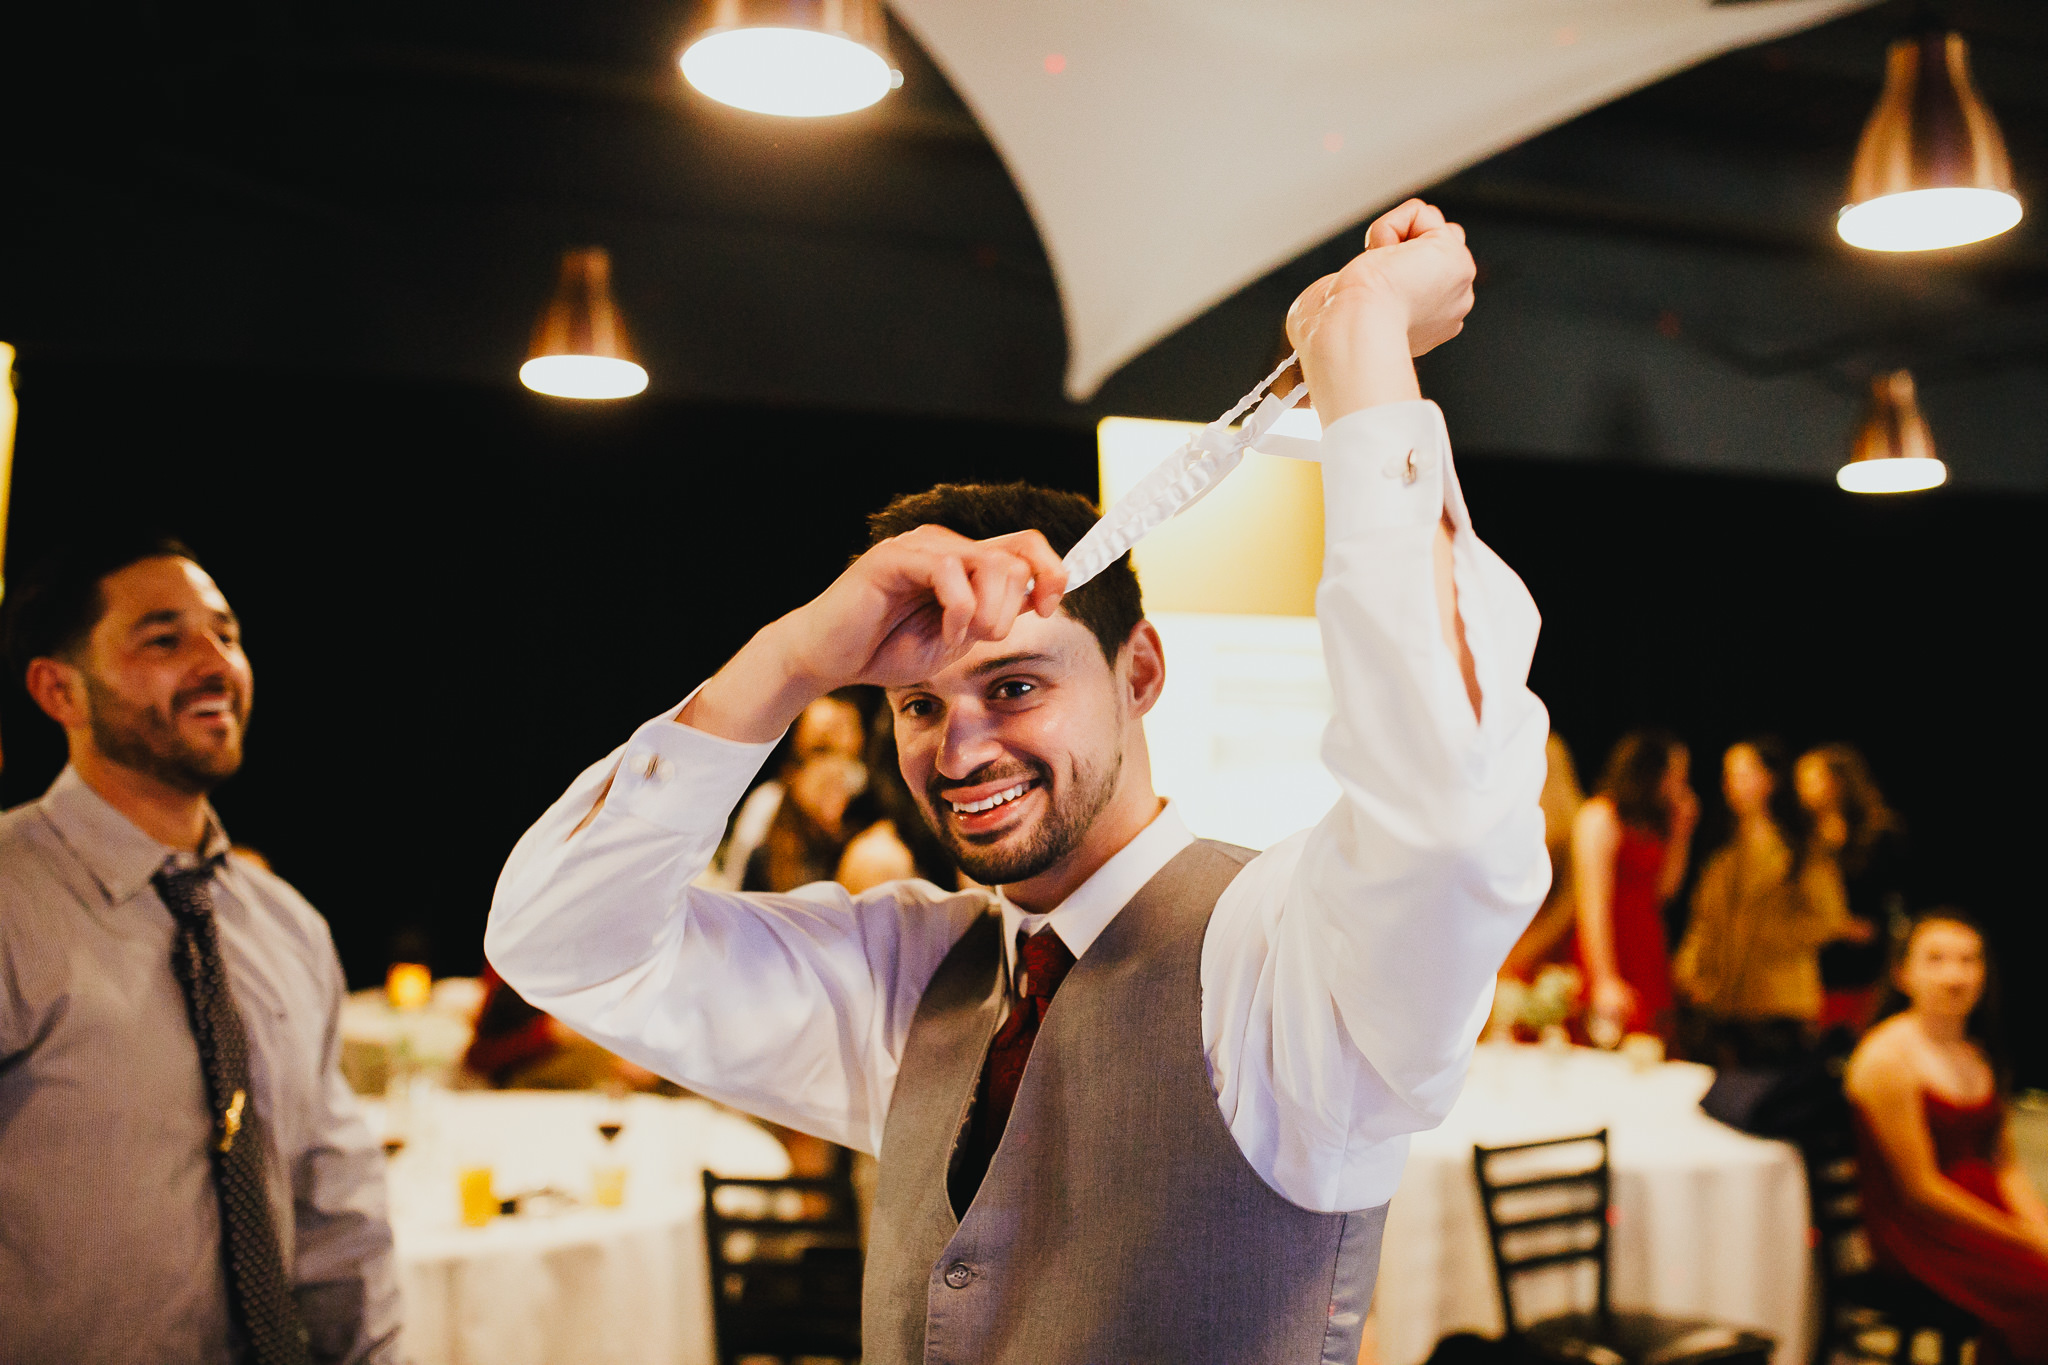 Archer Inspired Photography Shelby and Ben Wedding Sally Tomatoes NorCal Rohnert Park California-76.jpg